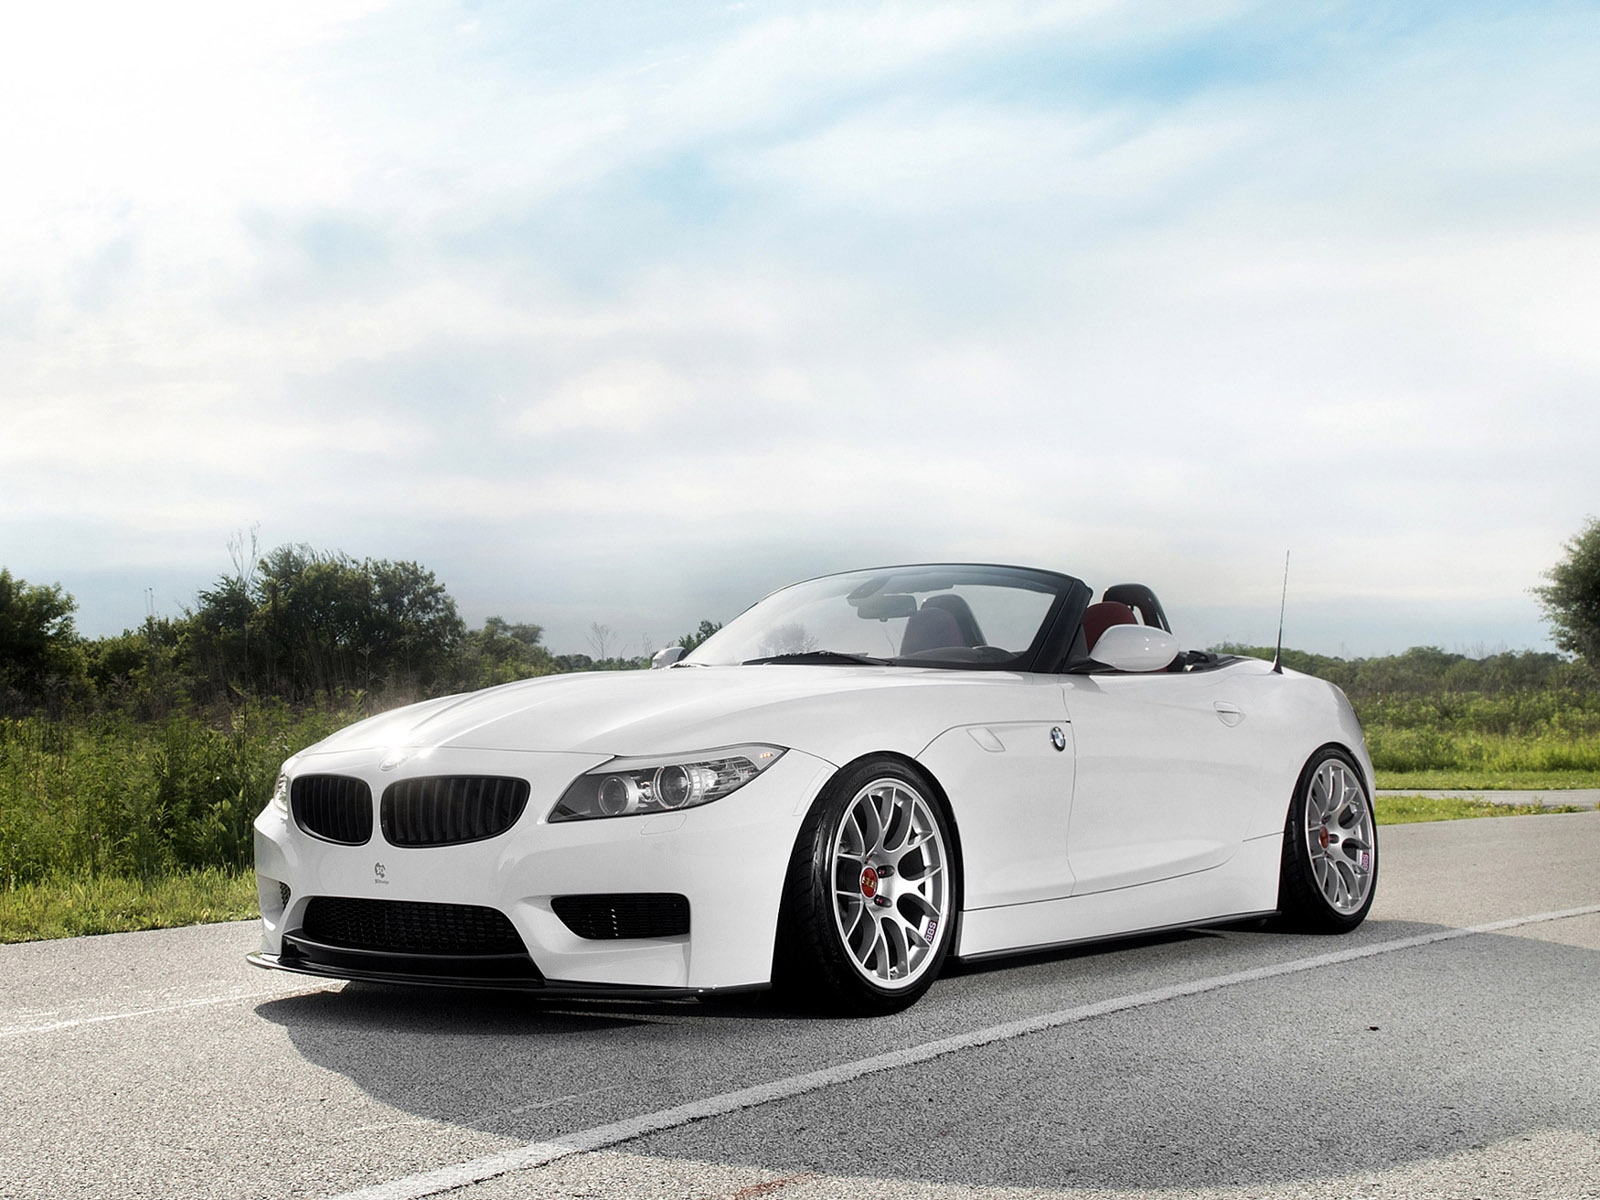 Bmw Z4 Reliability 2012 Total Quality Index Bmw X6 Z4